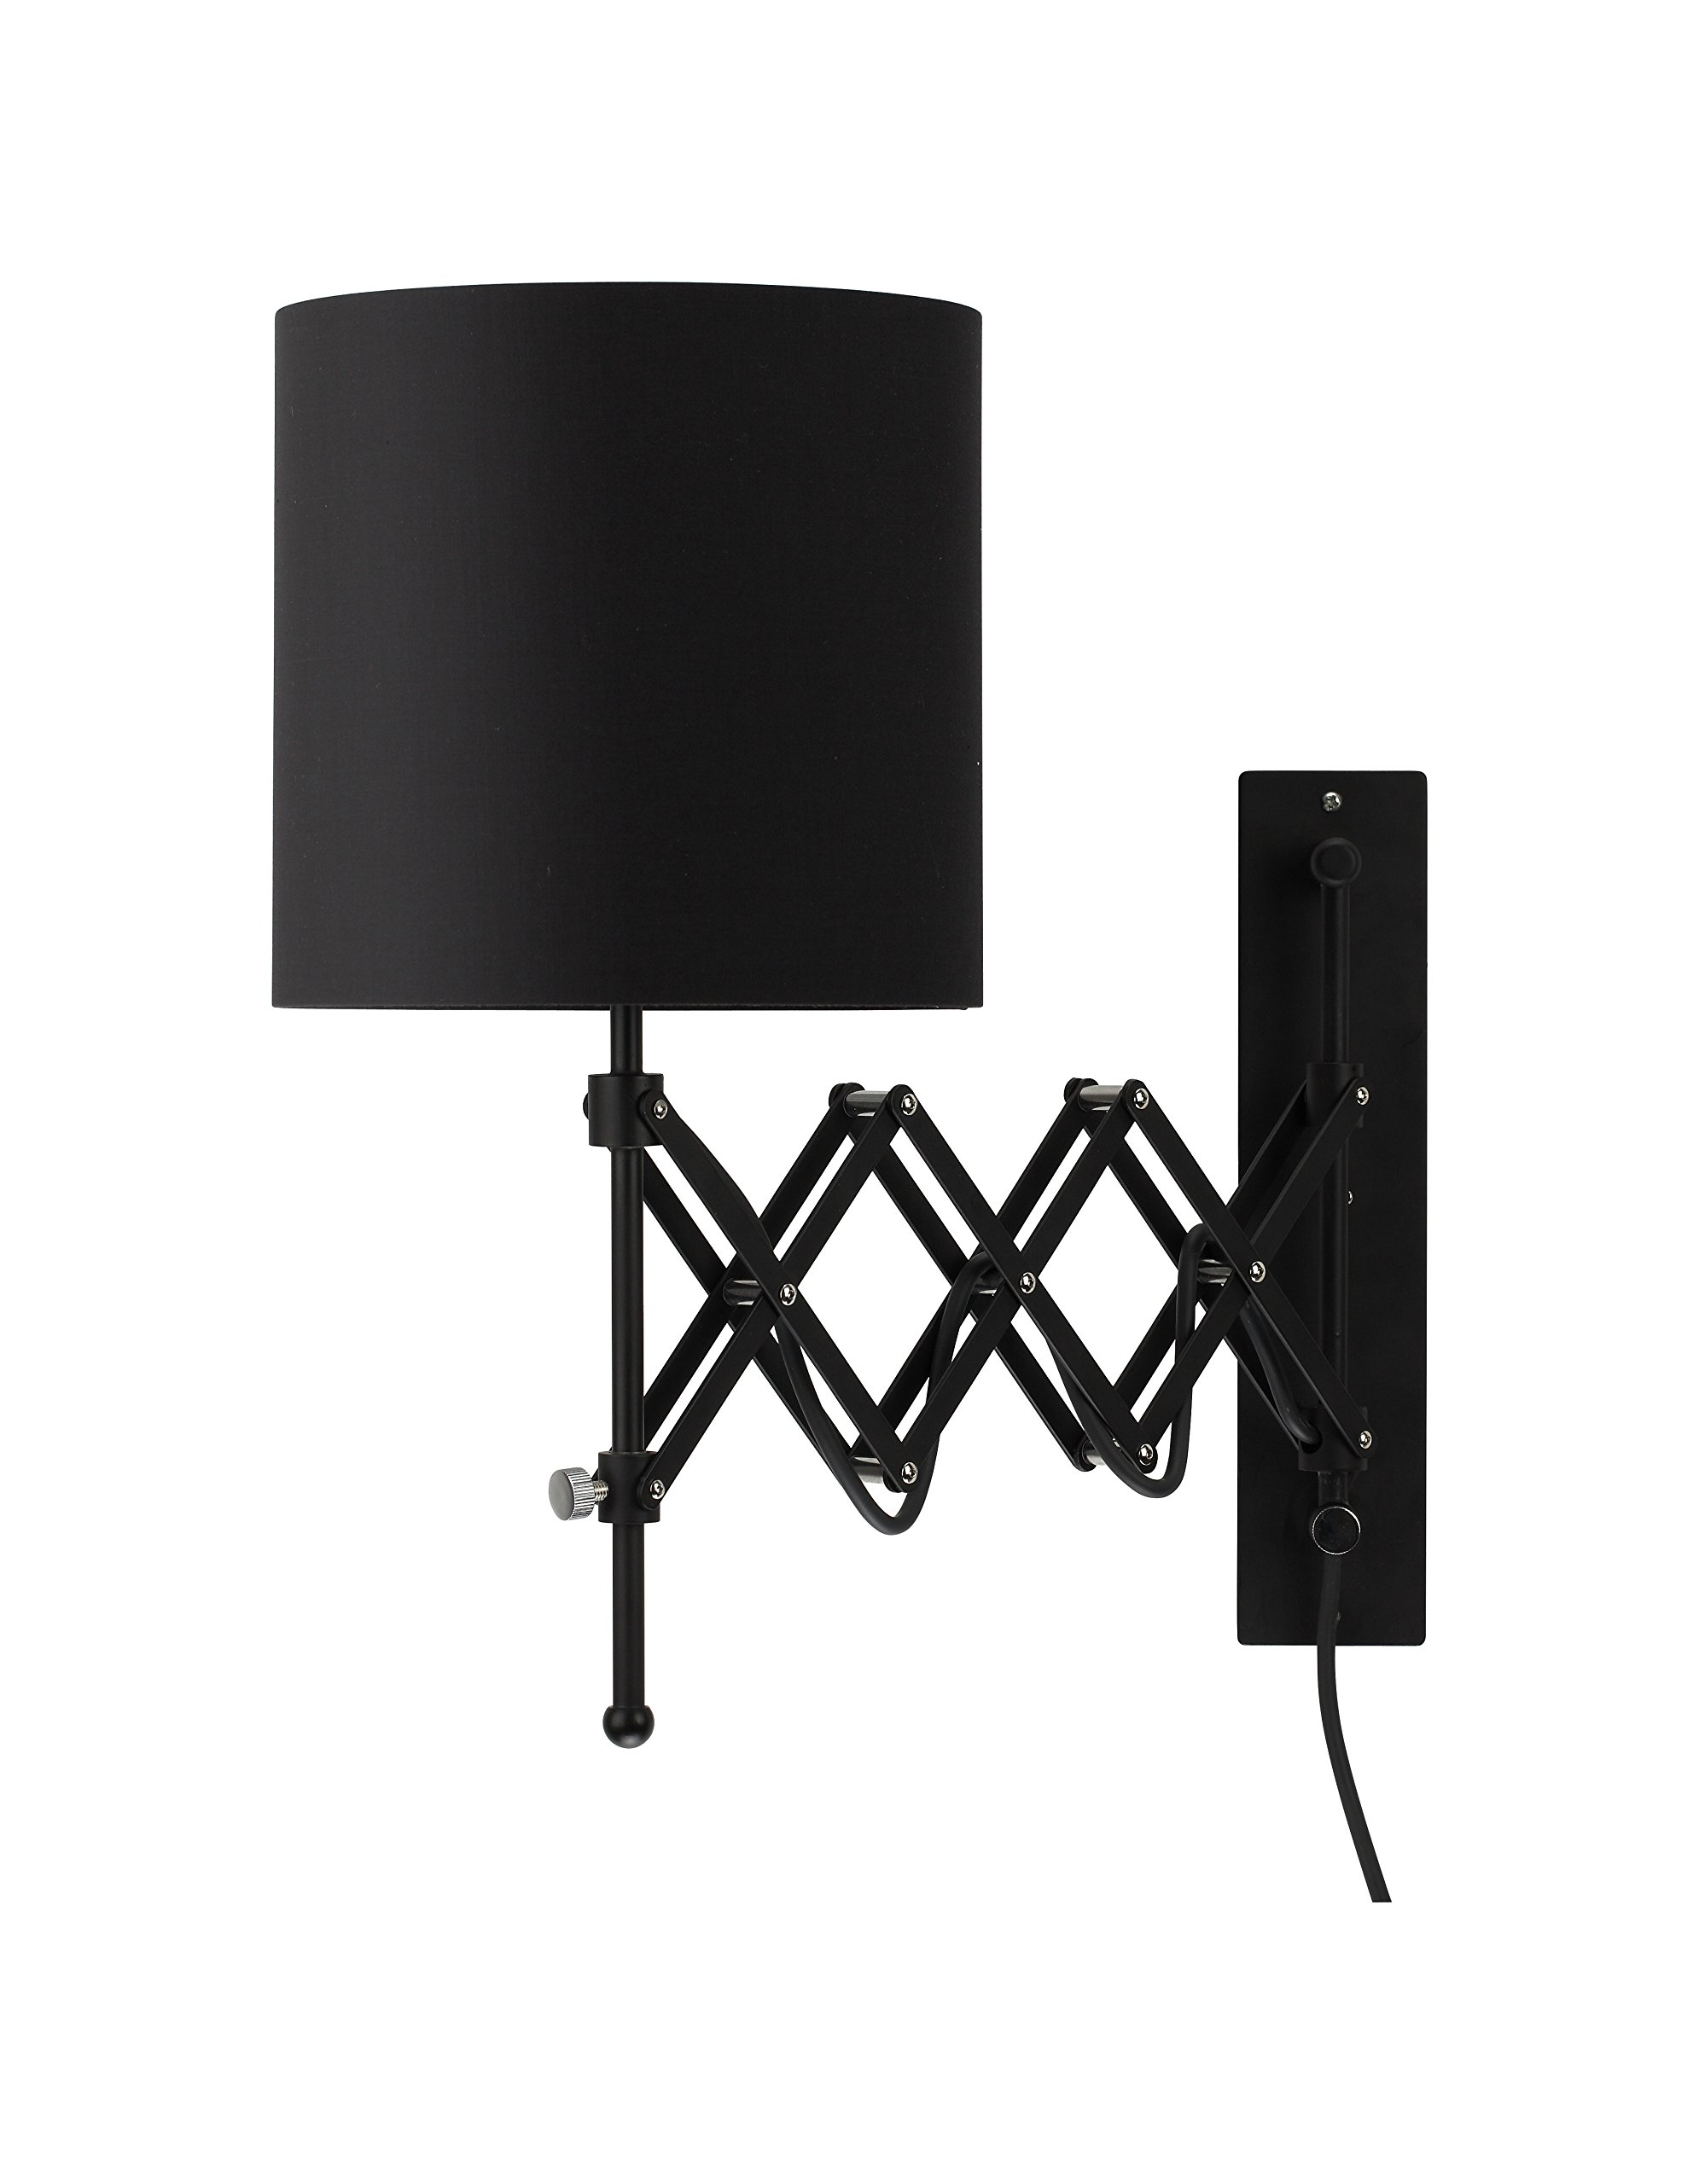 Modernluci Wall Sconce LED Wall Light Modern Plug in Bedroom Lamp Black - Knockdown design - which would make sure the lampshade arrives in a good shape and reduce packaging for environment-friendly. Easy Installation - just two screws and plug in the cord, switch the toggle, light up your room with ease. Energy Saving - Our LED light fixture comes with E26 Edison LED bulb which is long lasting and energy saving. - lamps, bedroom-decor, bedroom - 71Dh3xpKXIL -